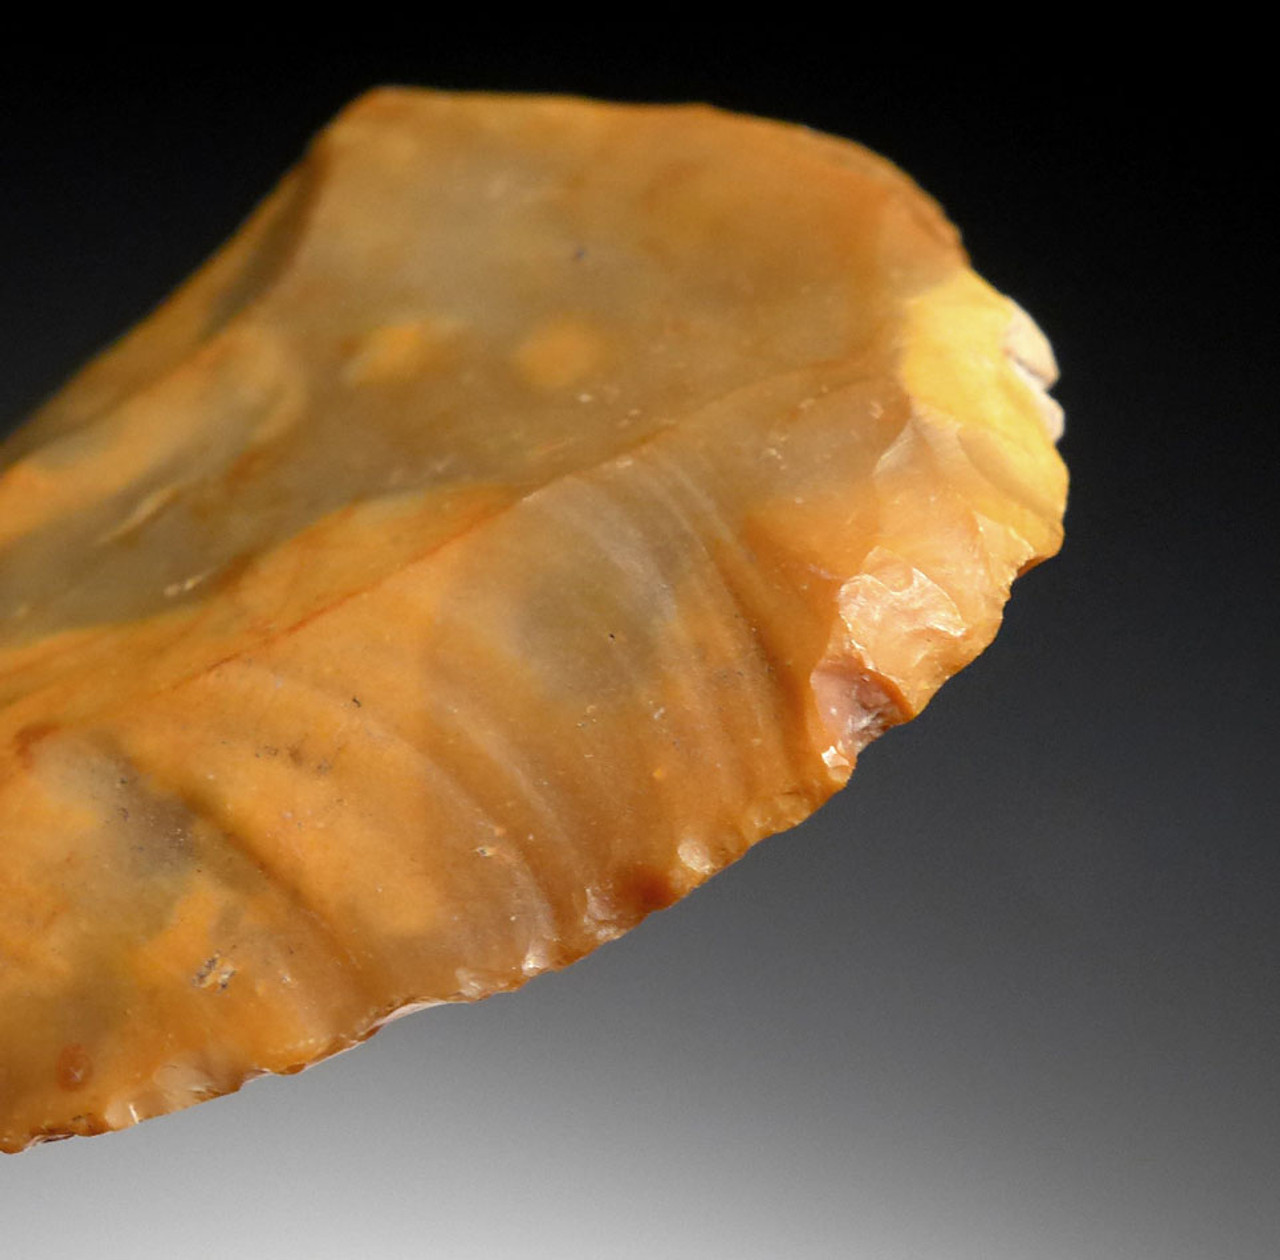 COLORFUL GOLD FLINT NEOLITHIC FLAKE END SCRAPER FROM THE FUNNEL-NECKED BEAKER CULTURE OF DENMARK *N175